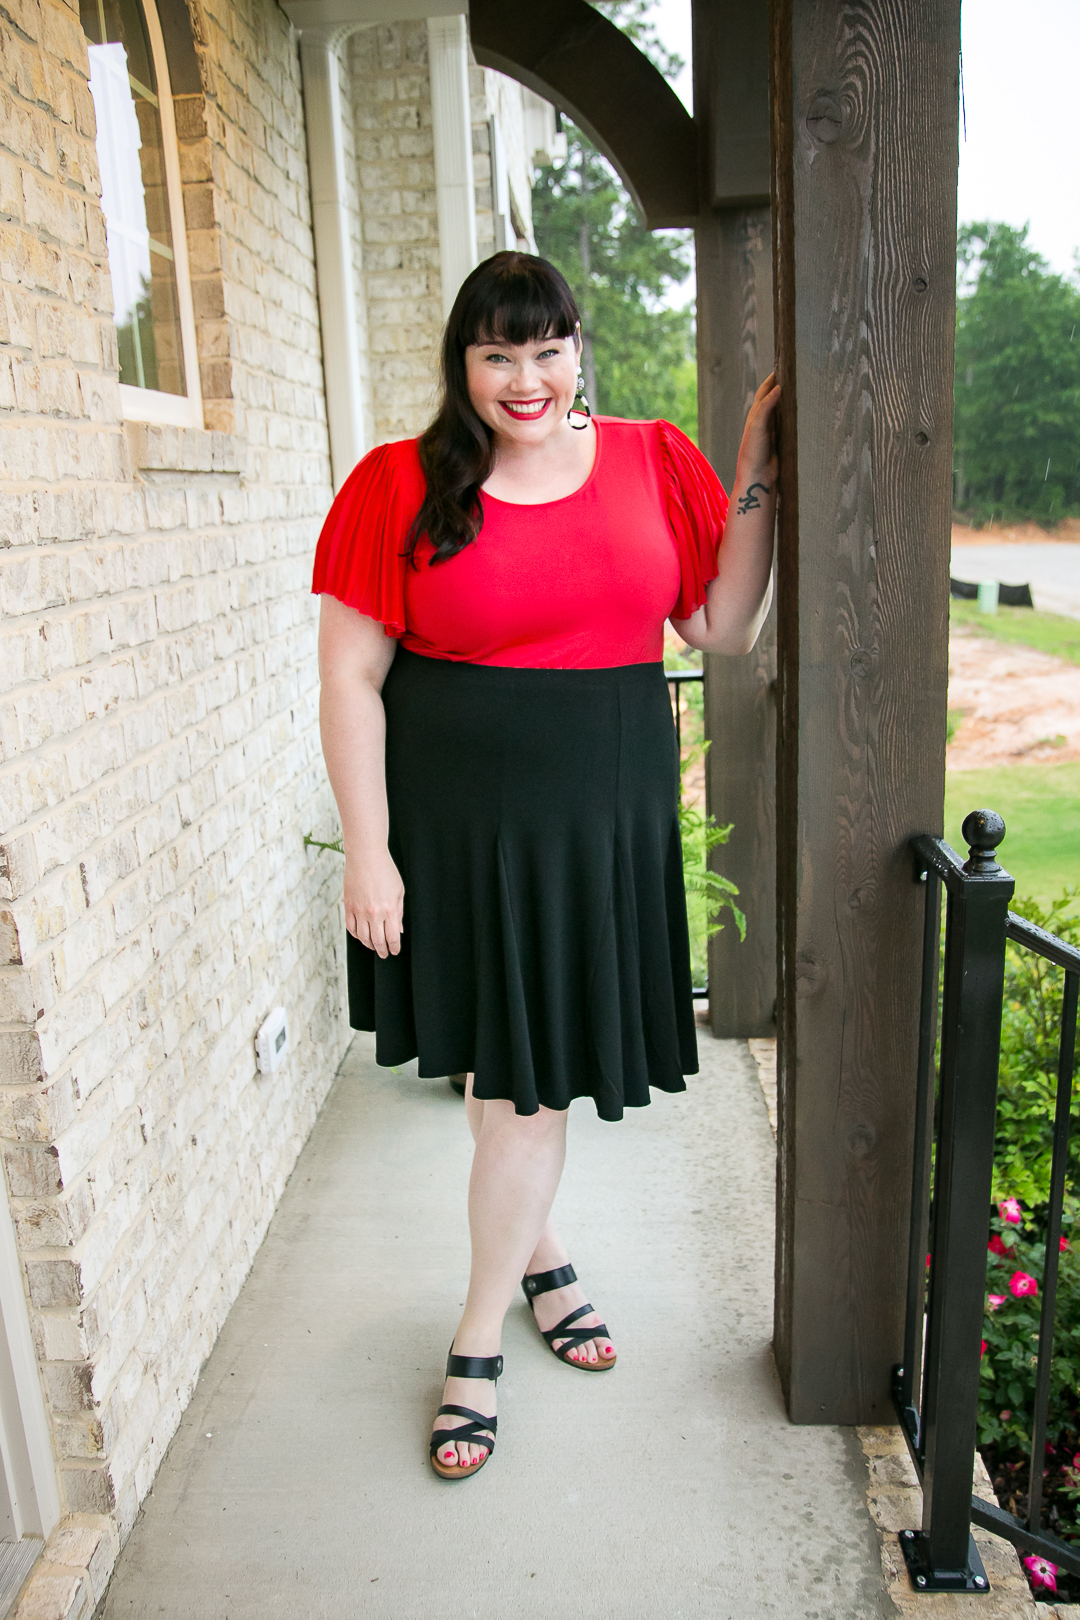 Plus Size Capsule Wardrobe, Avenue, Amber McCulloch, Style Plus Curves, Plus Size Blogger, Red Pleated Top, Black Swing Skirt, Travel Wardrobe